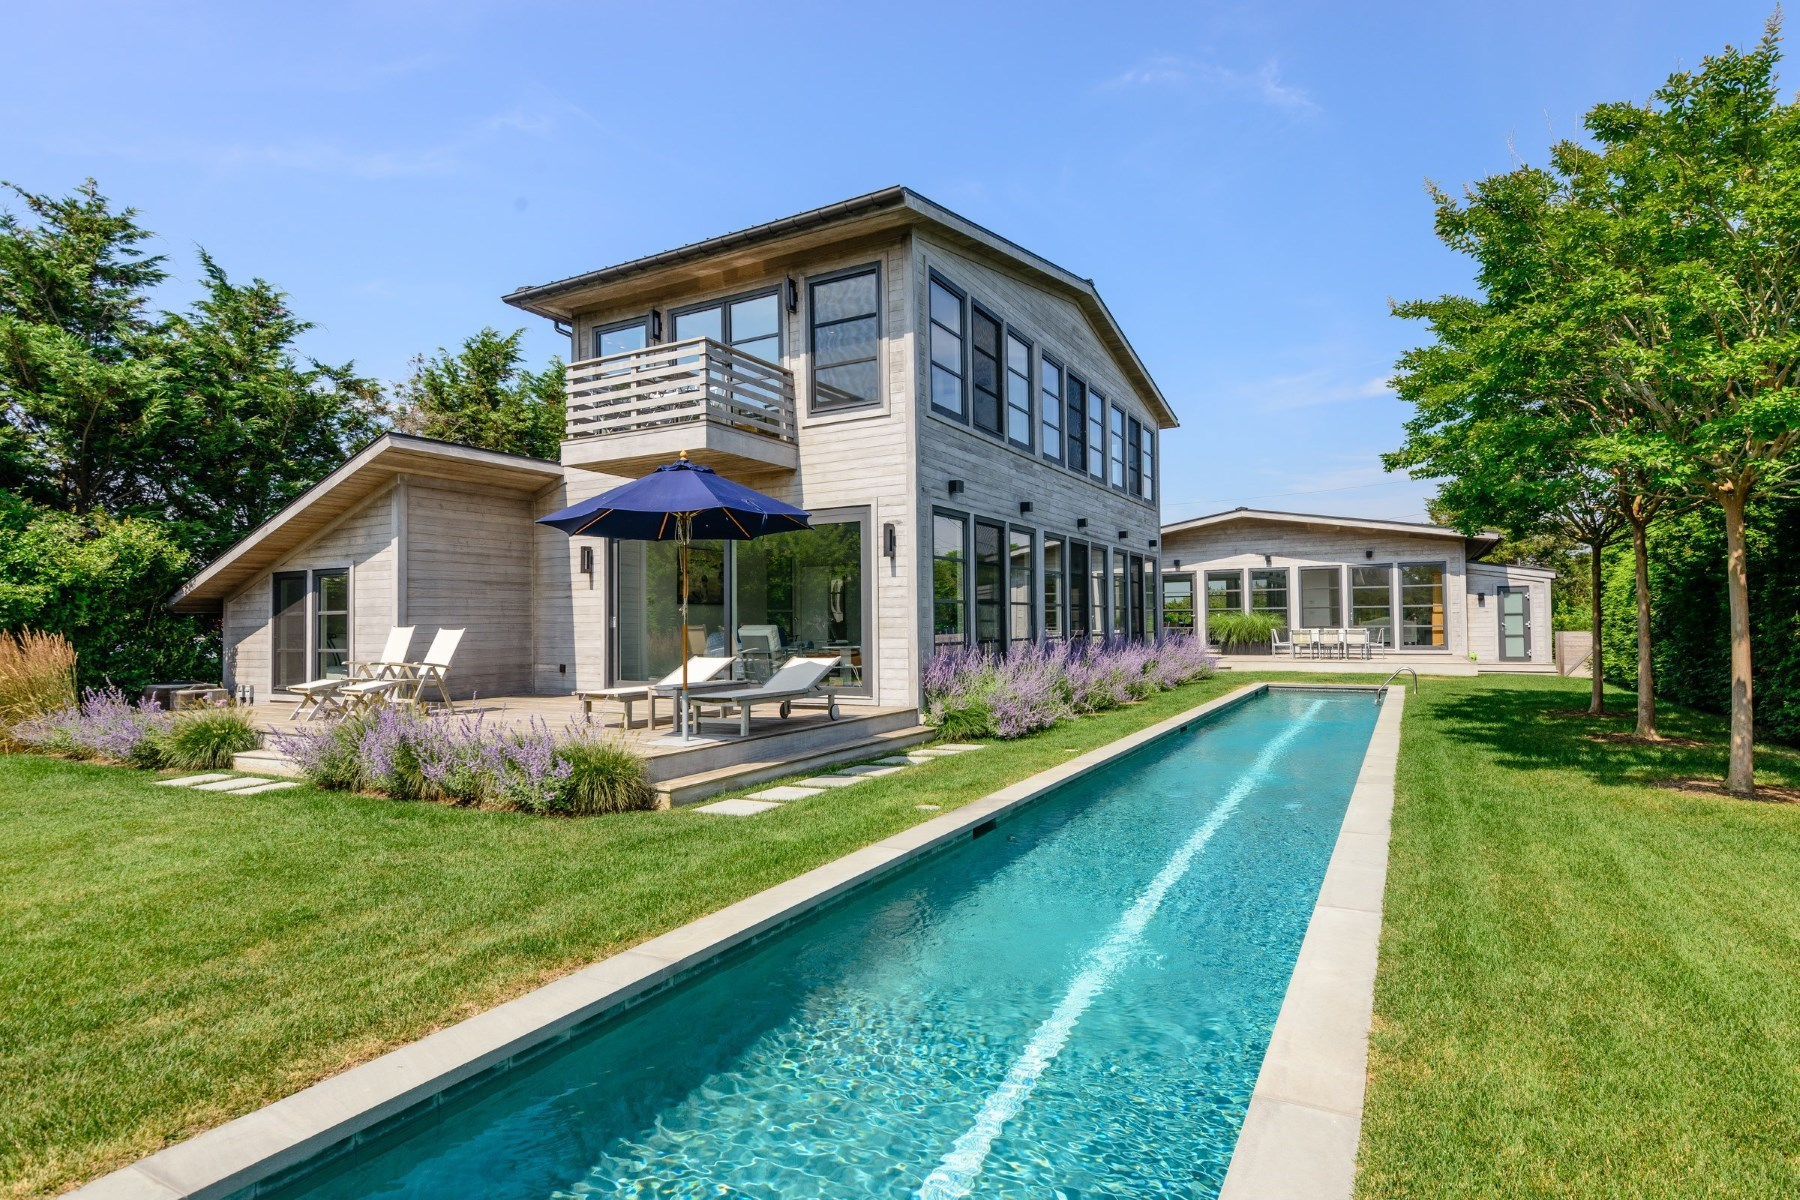 獨棟家庭住宅 為 出售 在 Modern Compound, Immediate Ocean Access 108 Town Line Road Sagaponack South, Sagaponack, 紐約州, 11962 美國